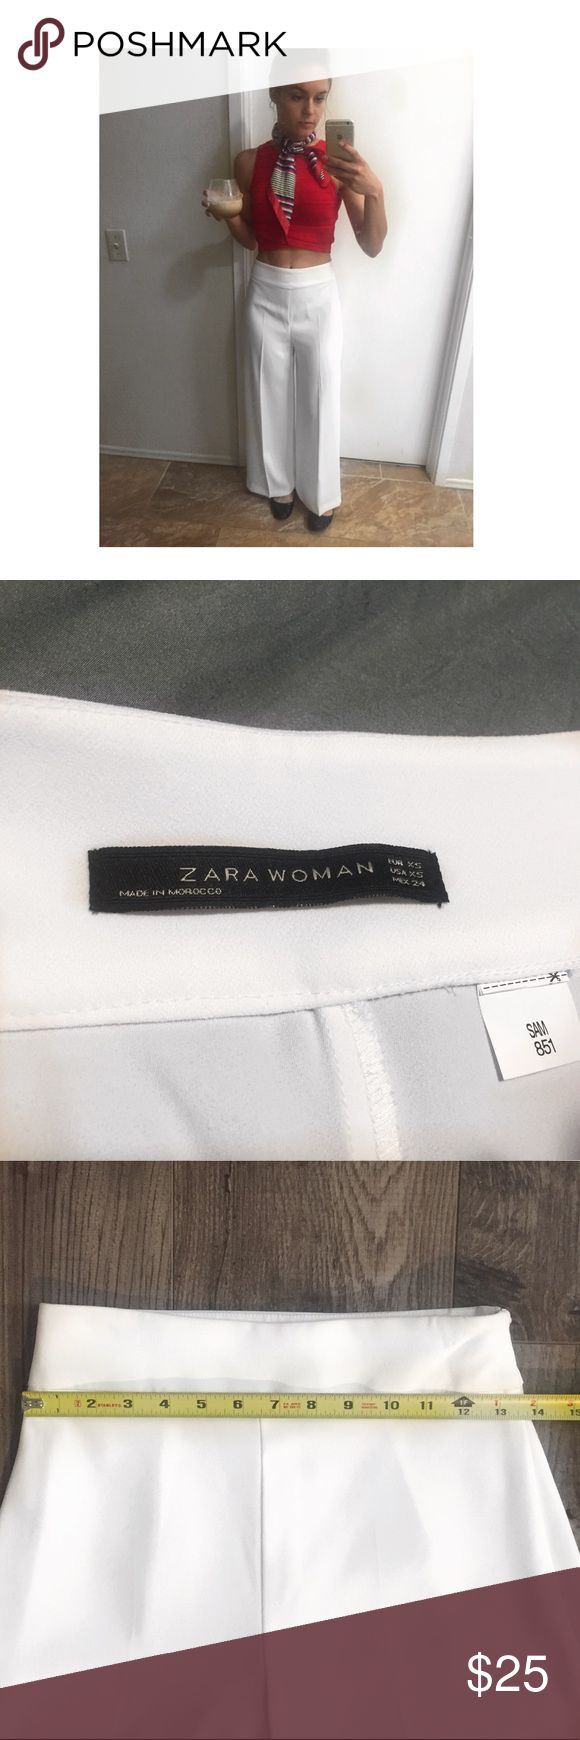 Zara women white trouser Zara women white trouser. High wasted. Wide leg. Zipper on side. Lightly used. Zara Pants Trousers